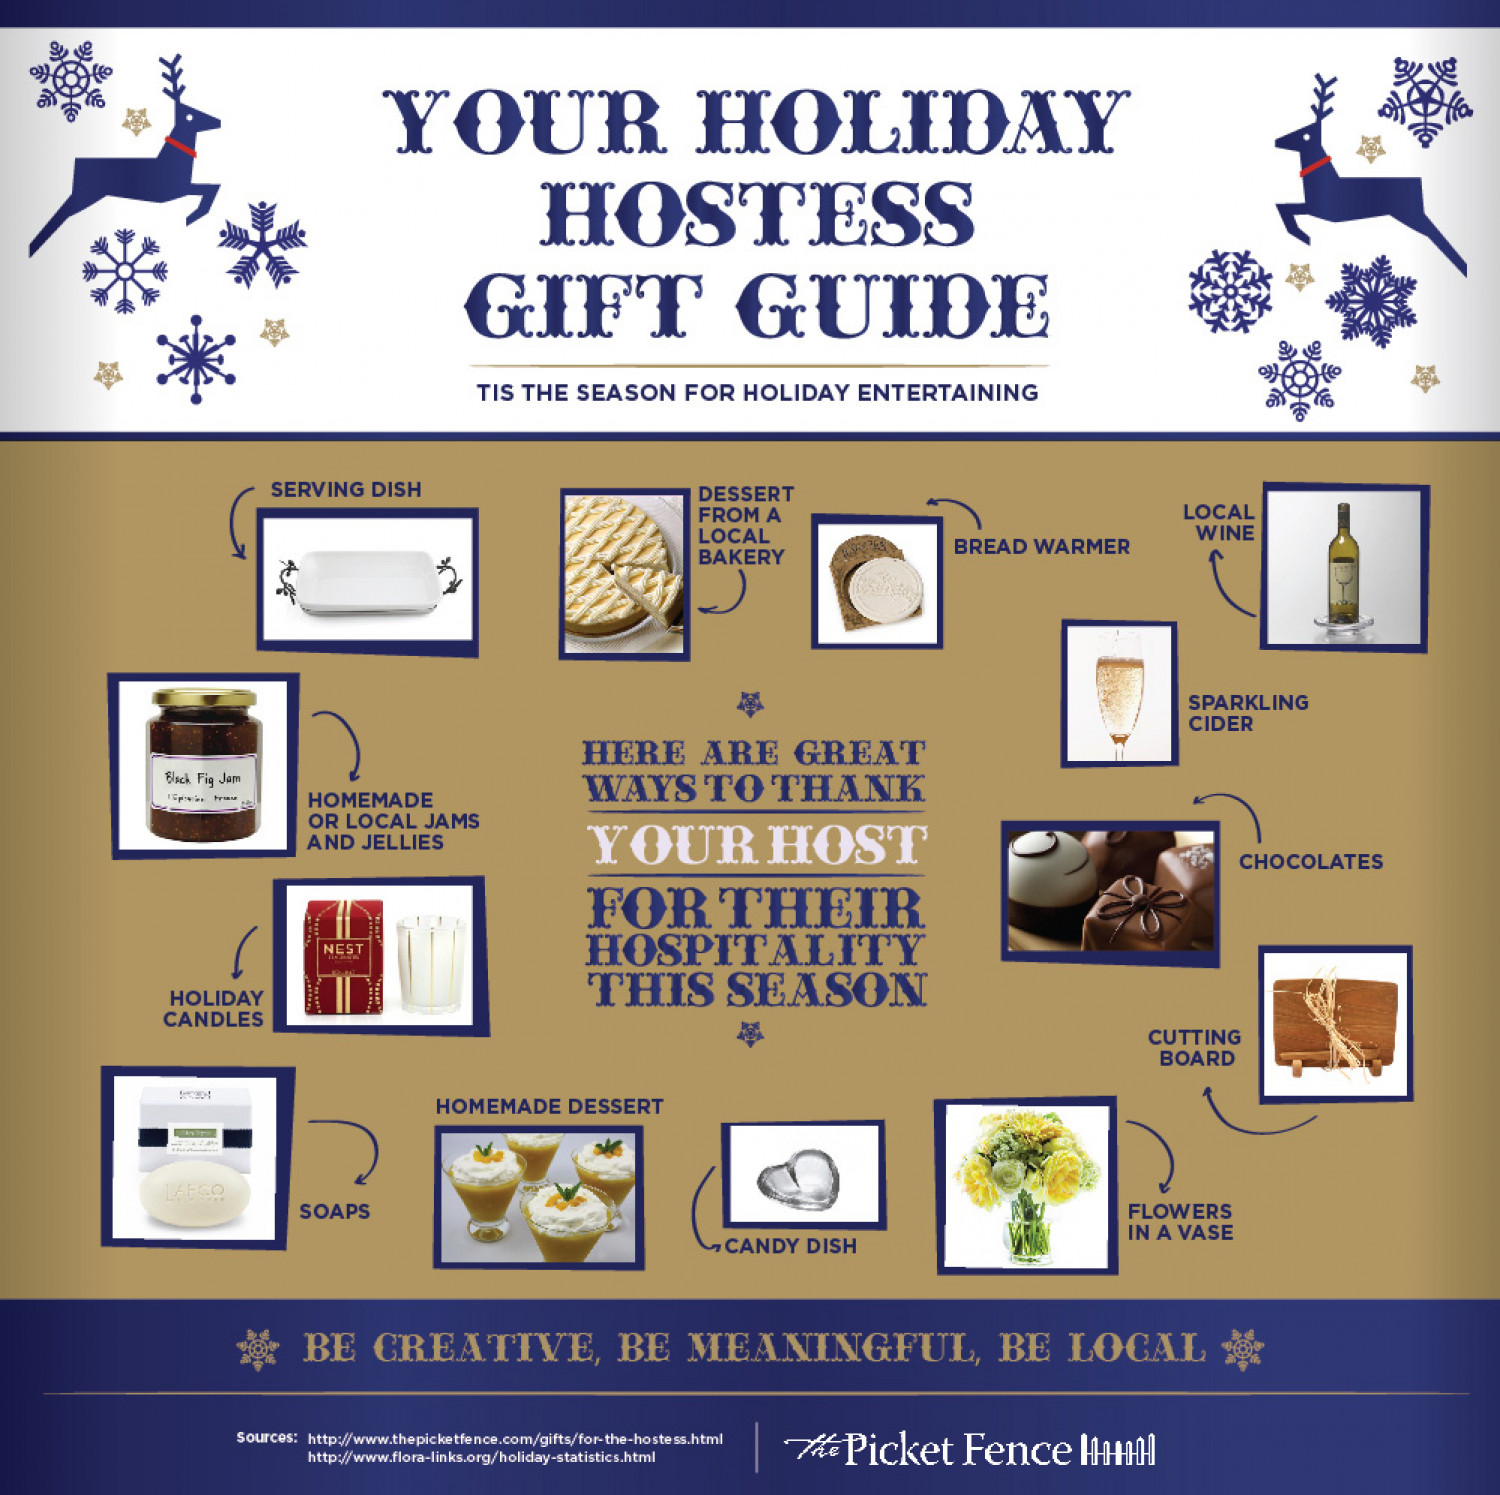 Your Holiday Hostess Gift Guide  Infographic